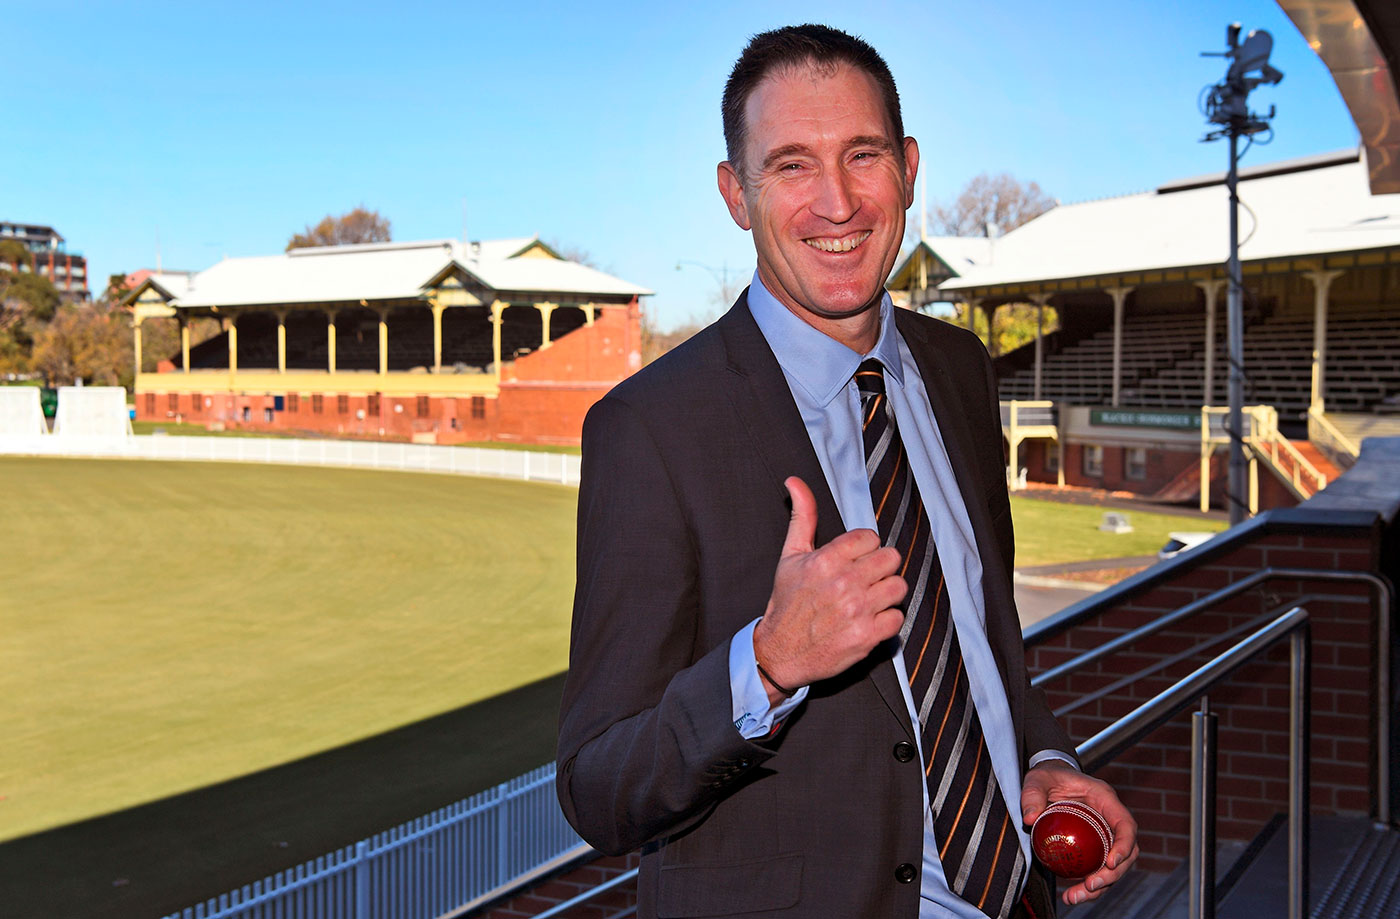 James Sutherland gives a thumbs-up sign to reporters after announcing his decision to step down as Cricket Australia CEO